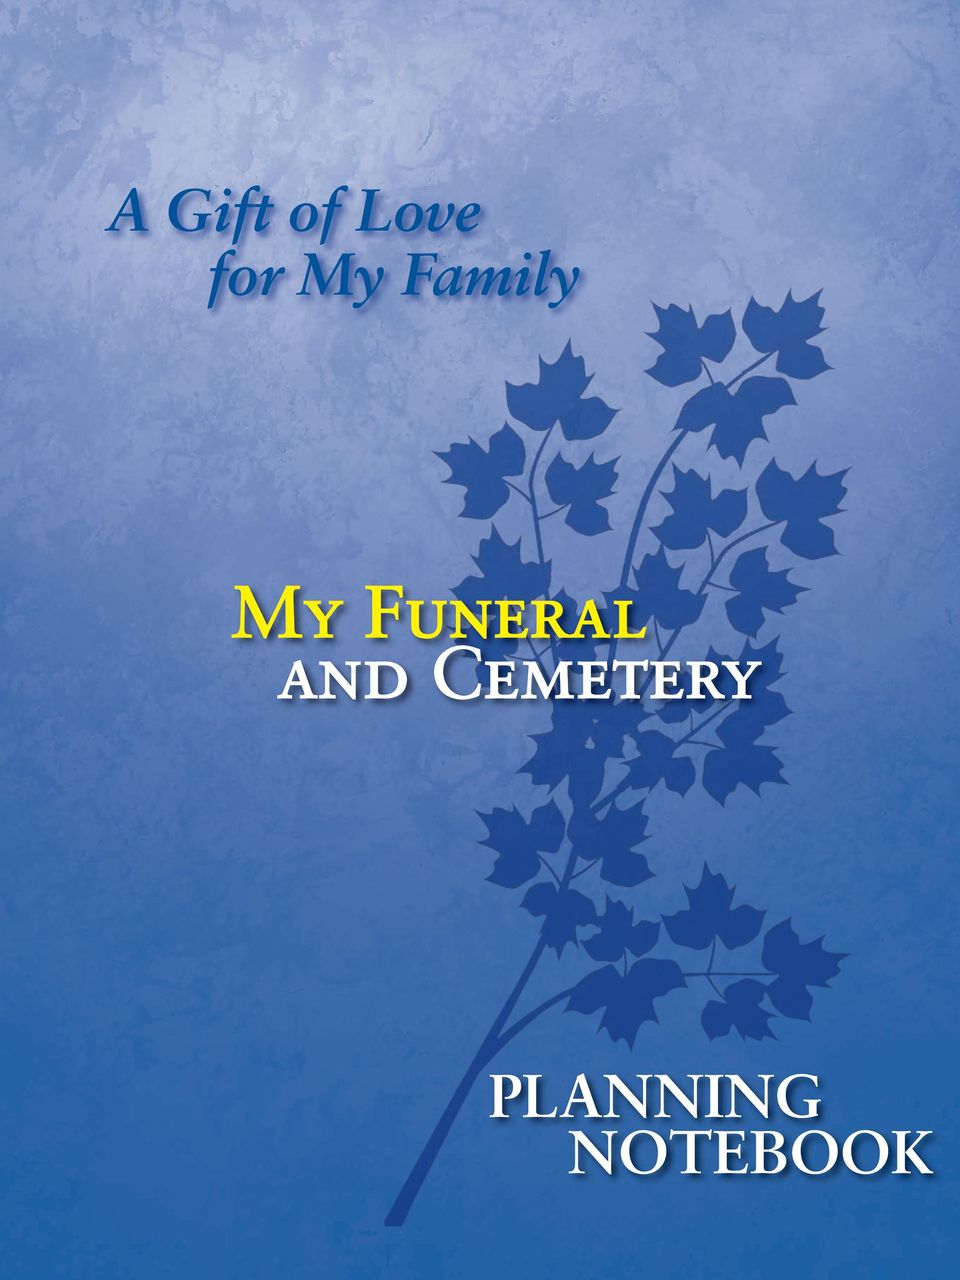 Funeral and